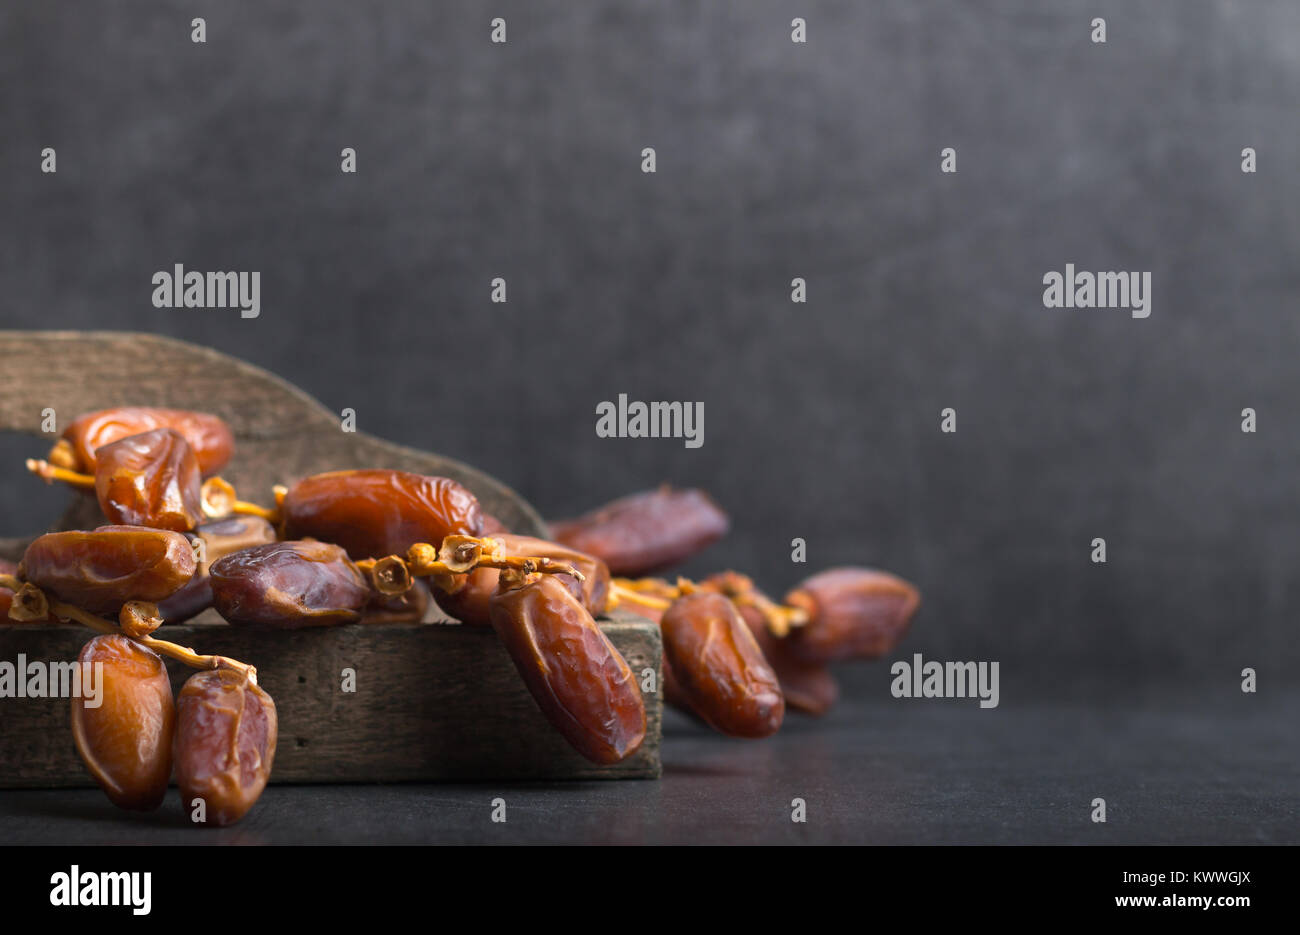 fresh harvested dates on a grey background - Stock Image